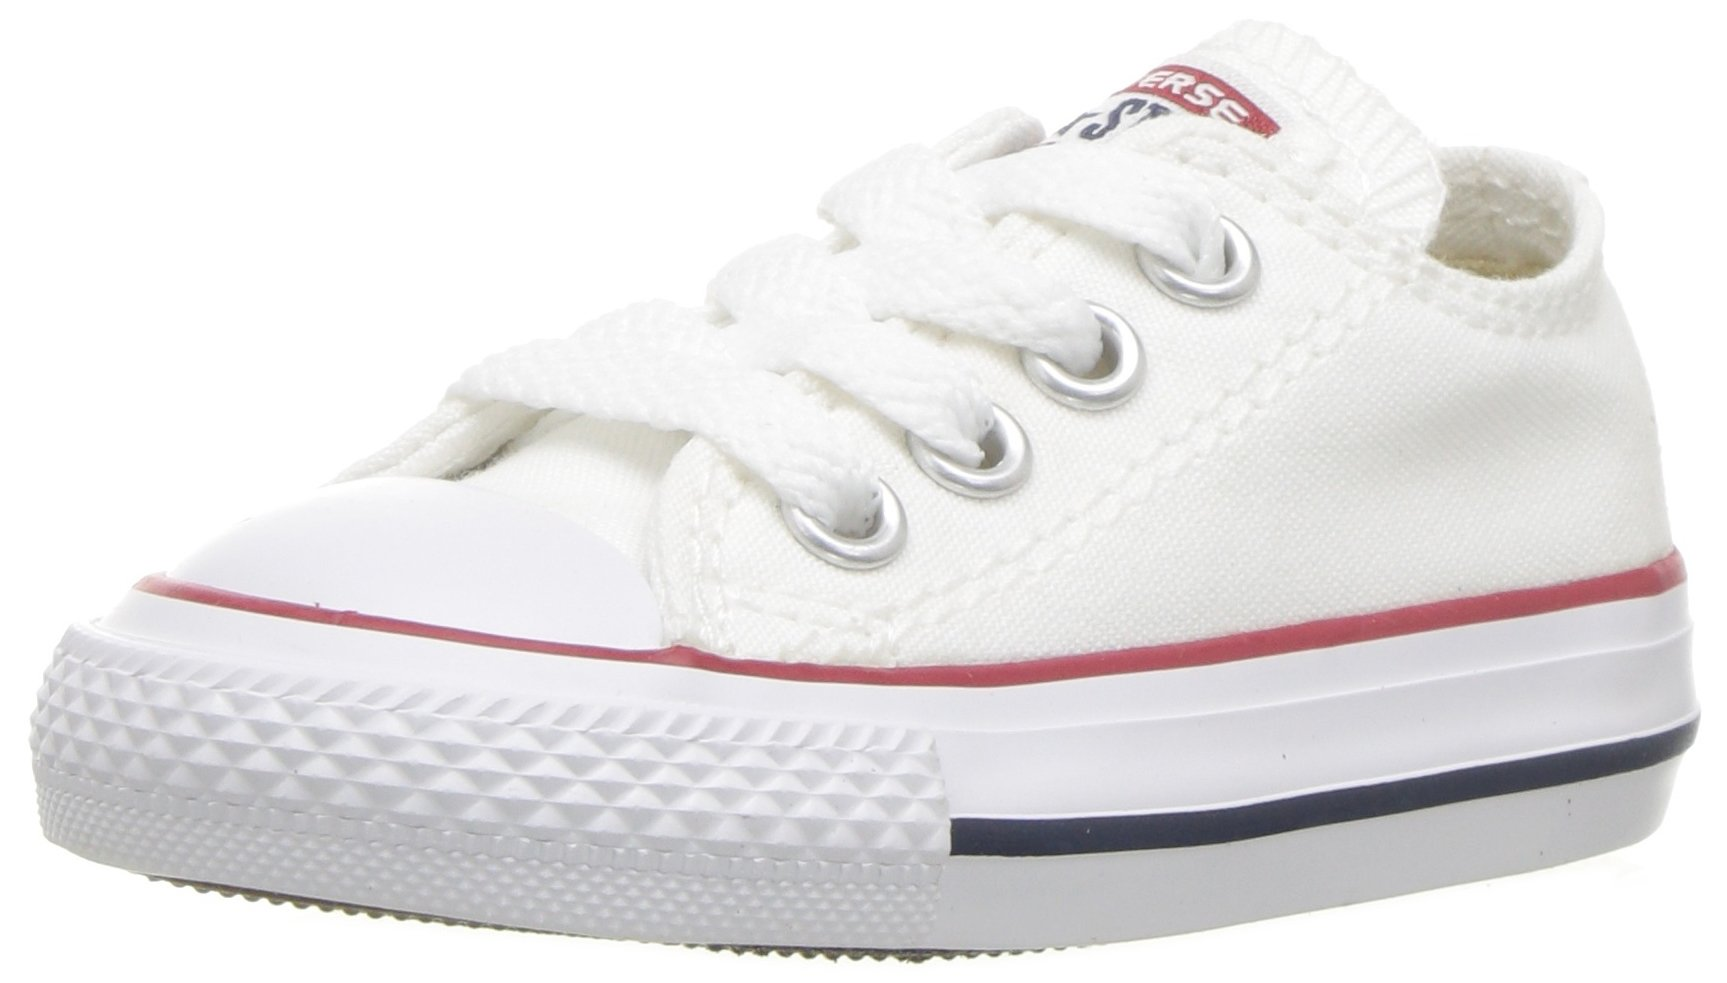 Converse Chuck Taylor All Star Canvas Low Top Sneaker, Optical White, 13.5 M US Little Kid